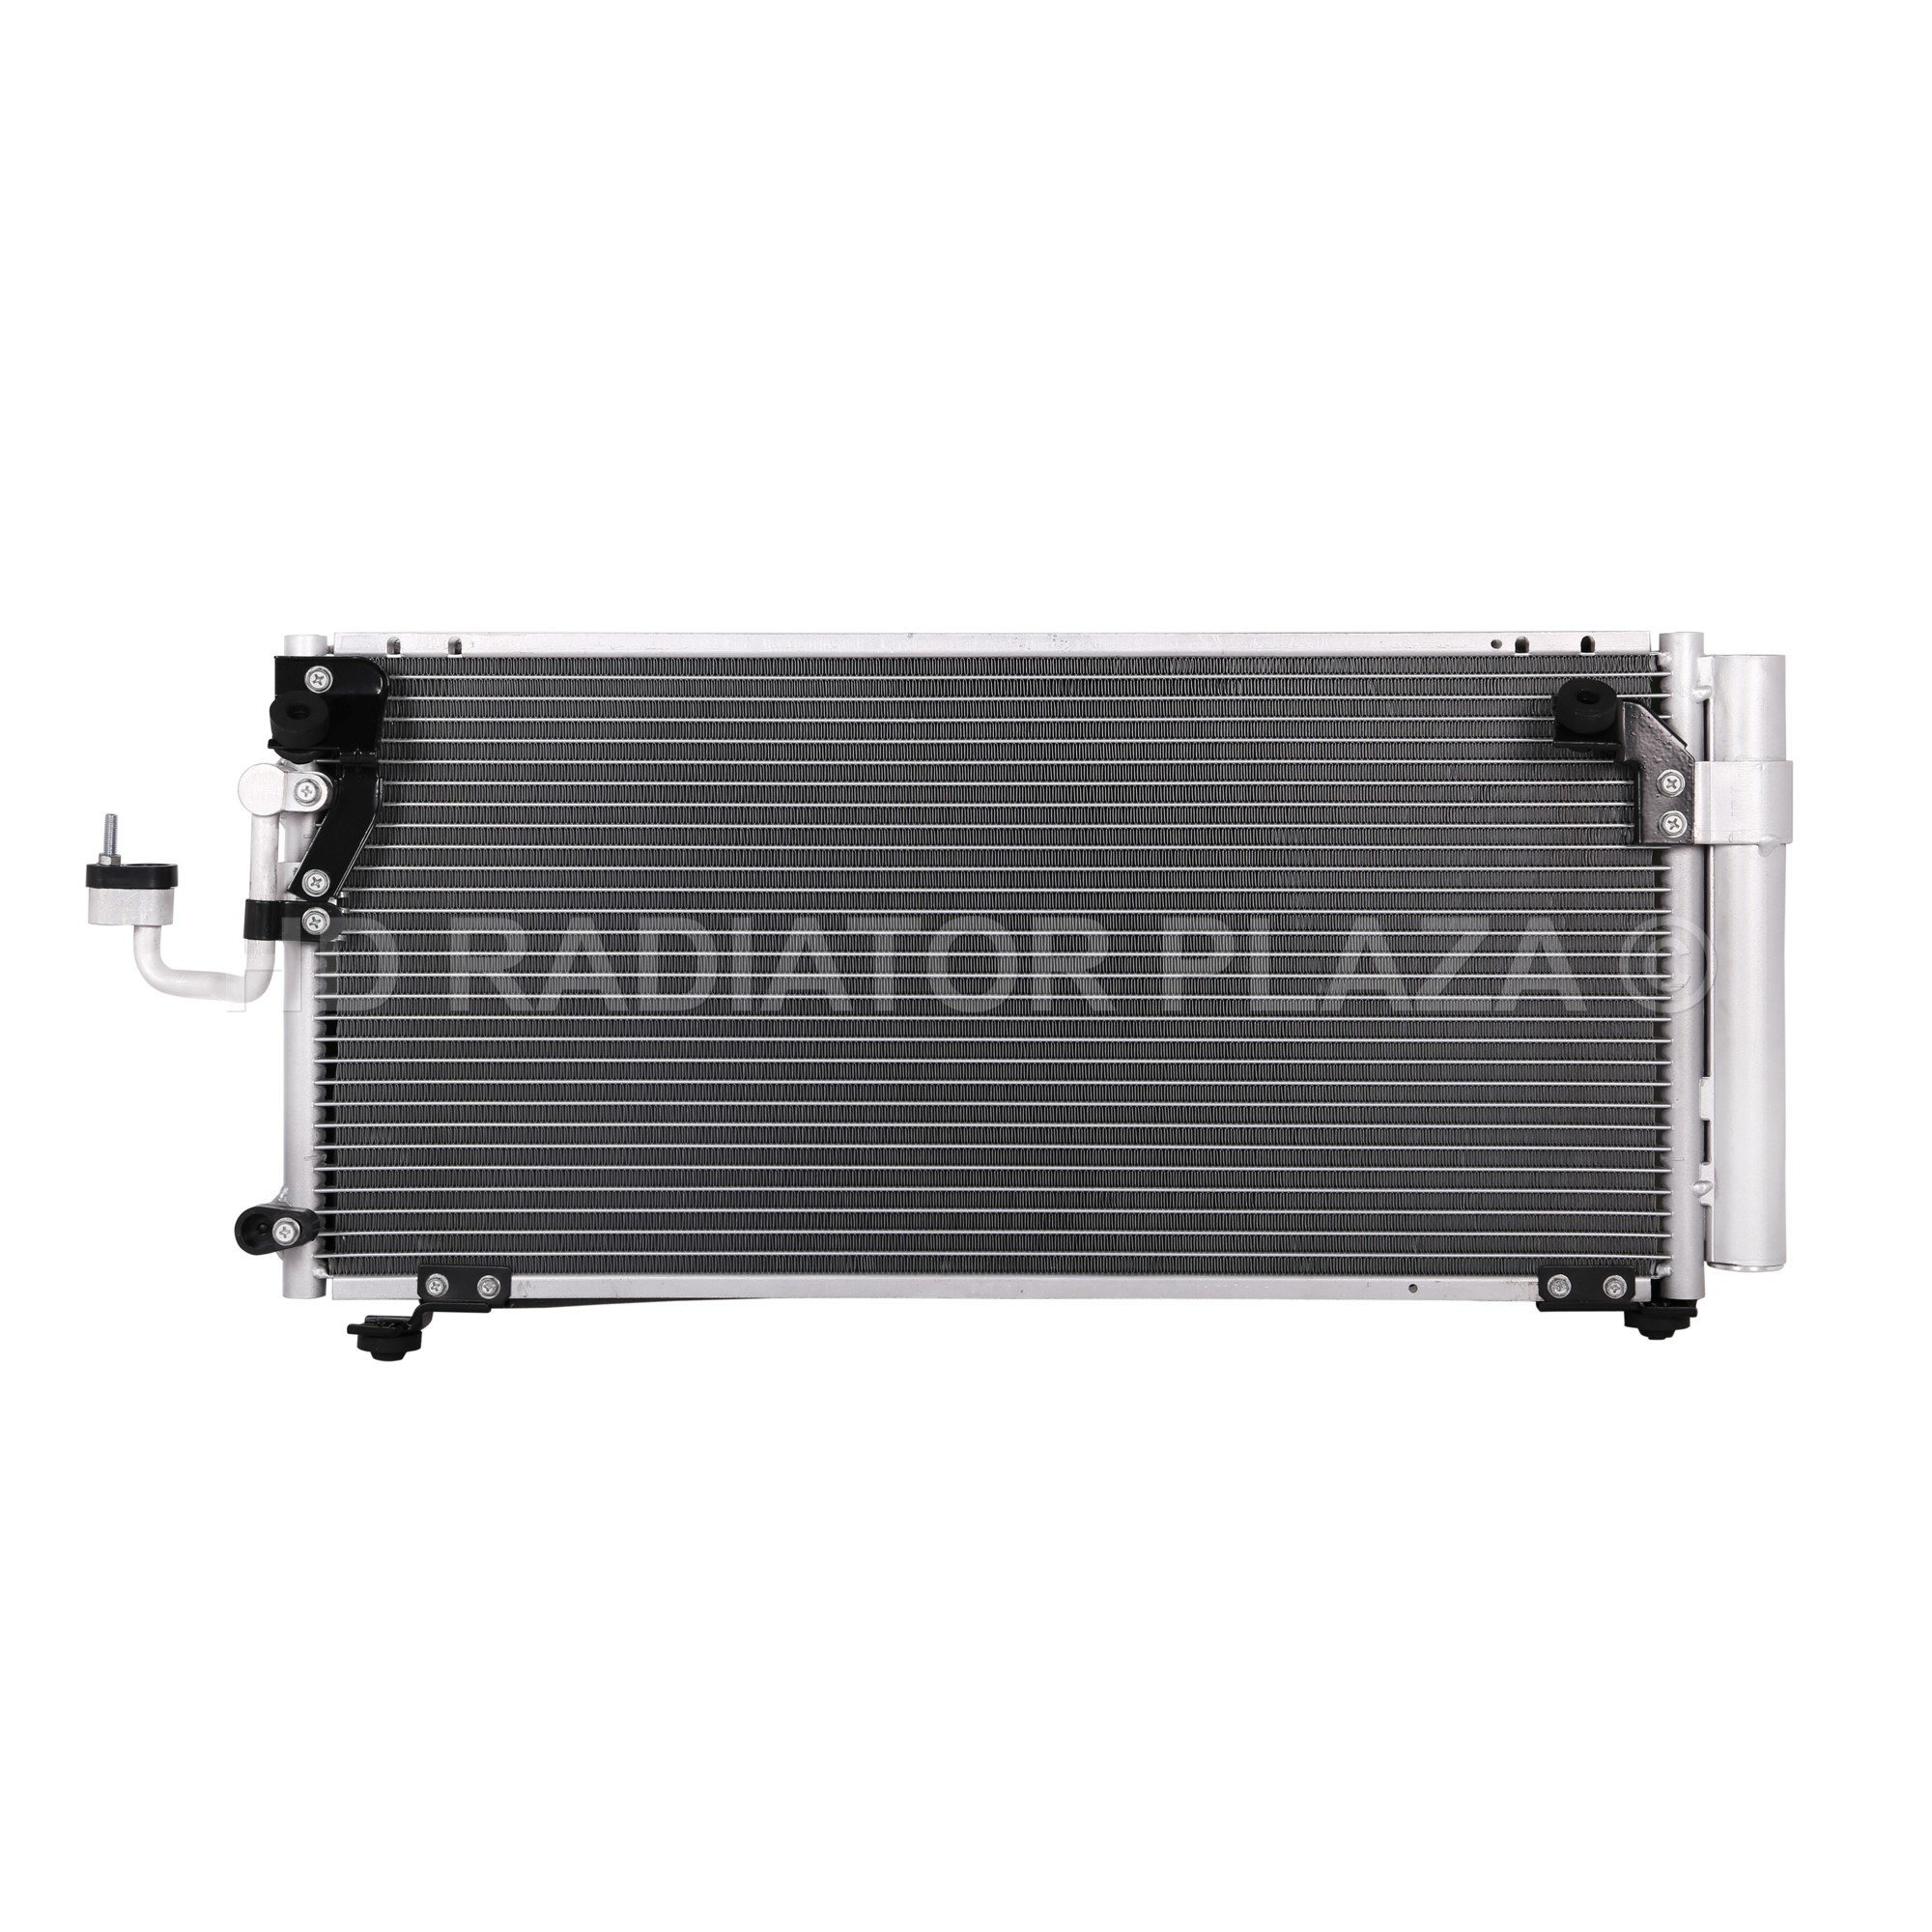 AC Condensers for 01-05 Chrysler Cirrus / Sebring, Dodge Stratus, Mitsubishi Eclipse, Coupe With dryer